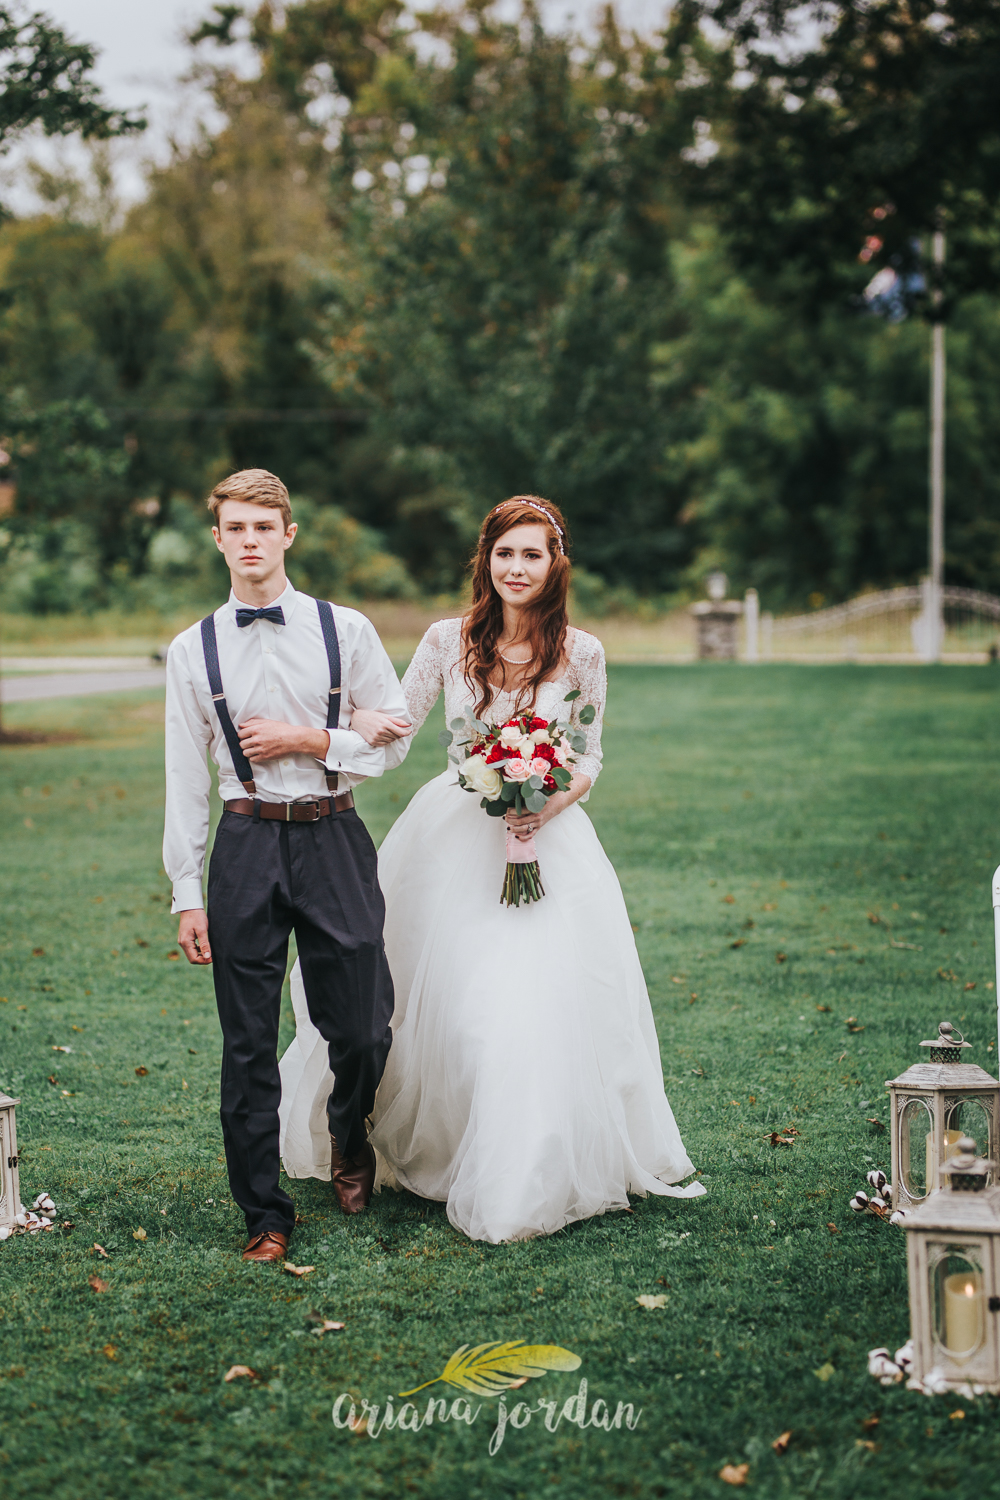 144 - Ariana Jordan - Kentucky Wedding Photographer - Landon & Tabitha_.jpg